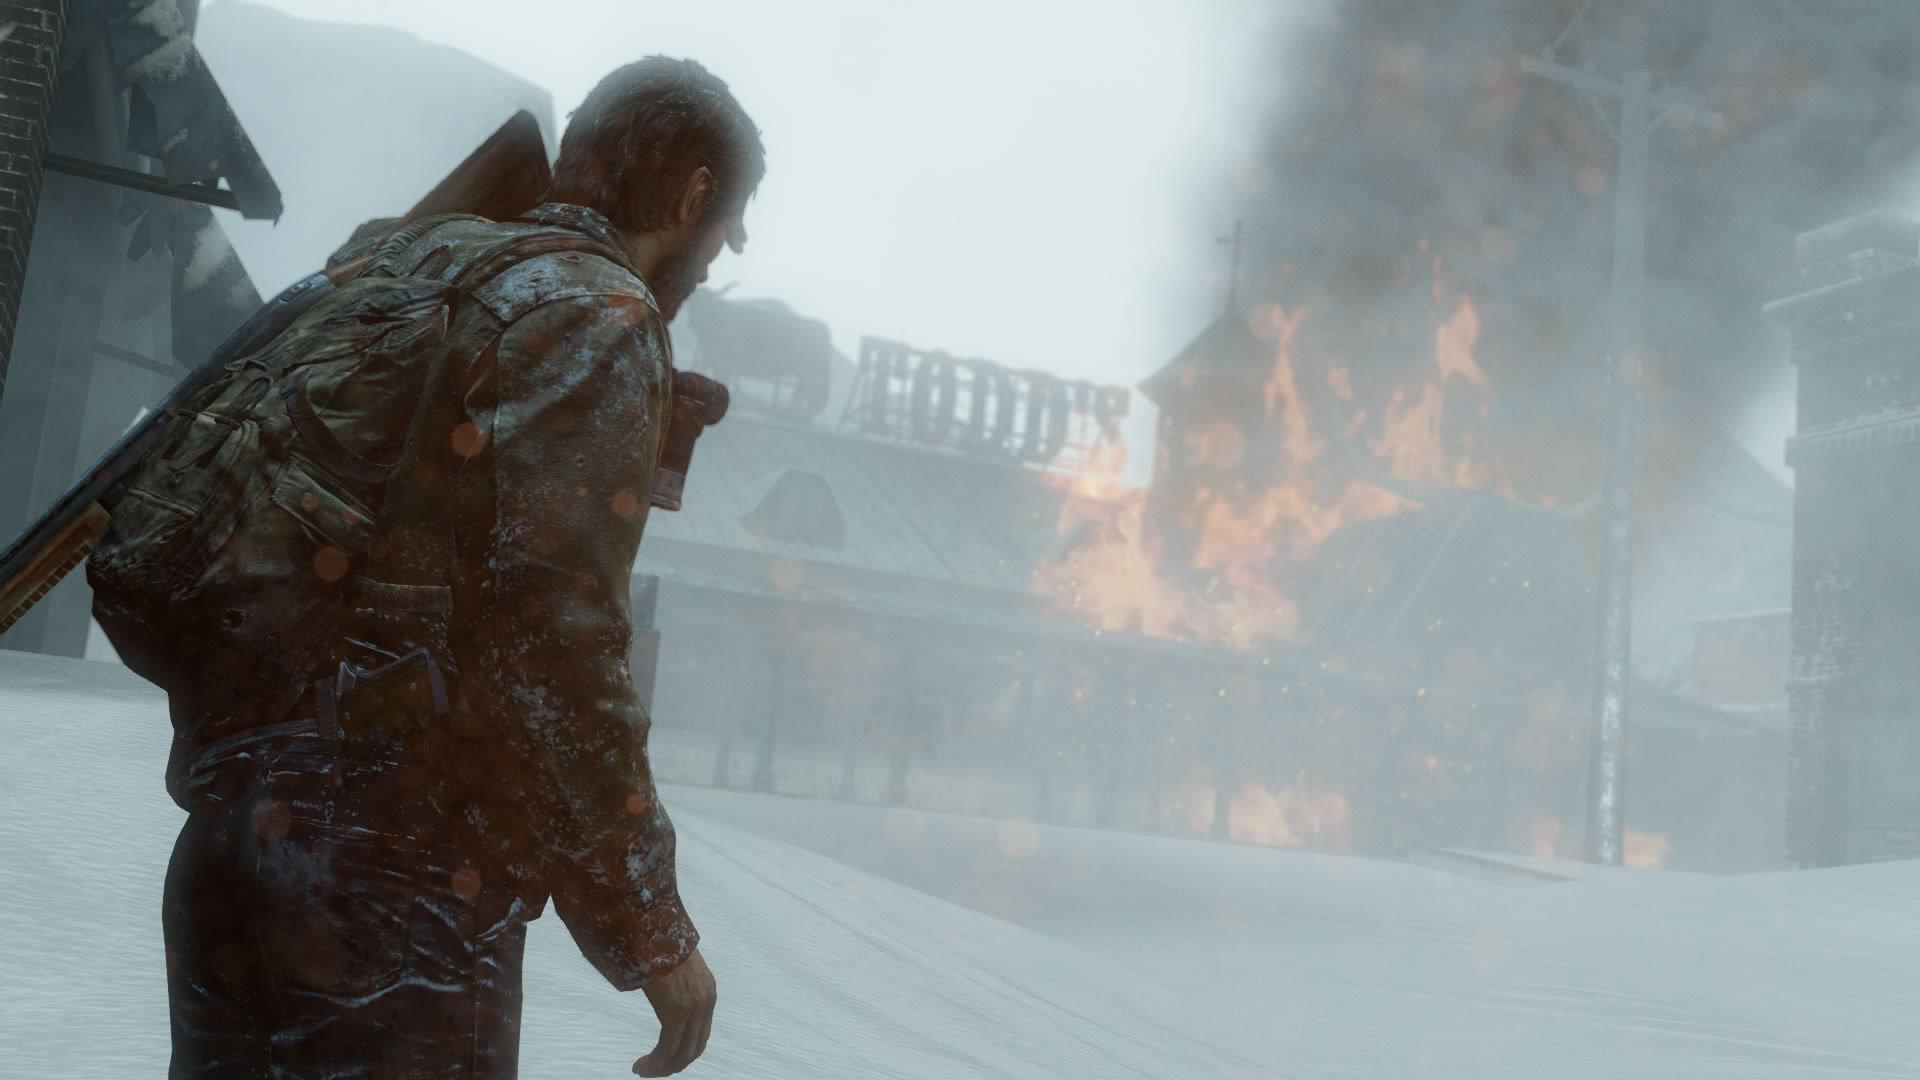 View Larger - Last Of Us Remastered Snow , HD Wallpaper & Backgrounds